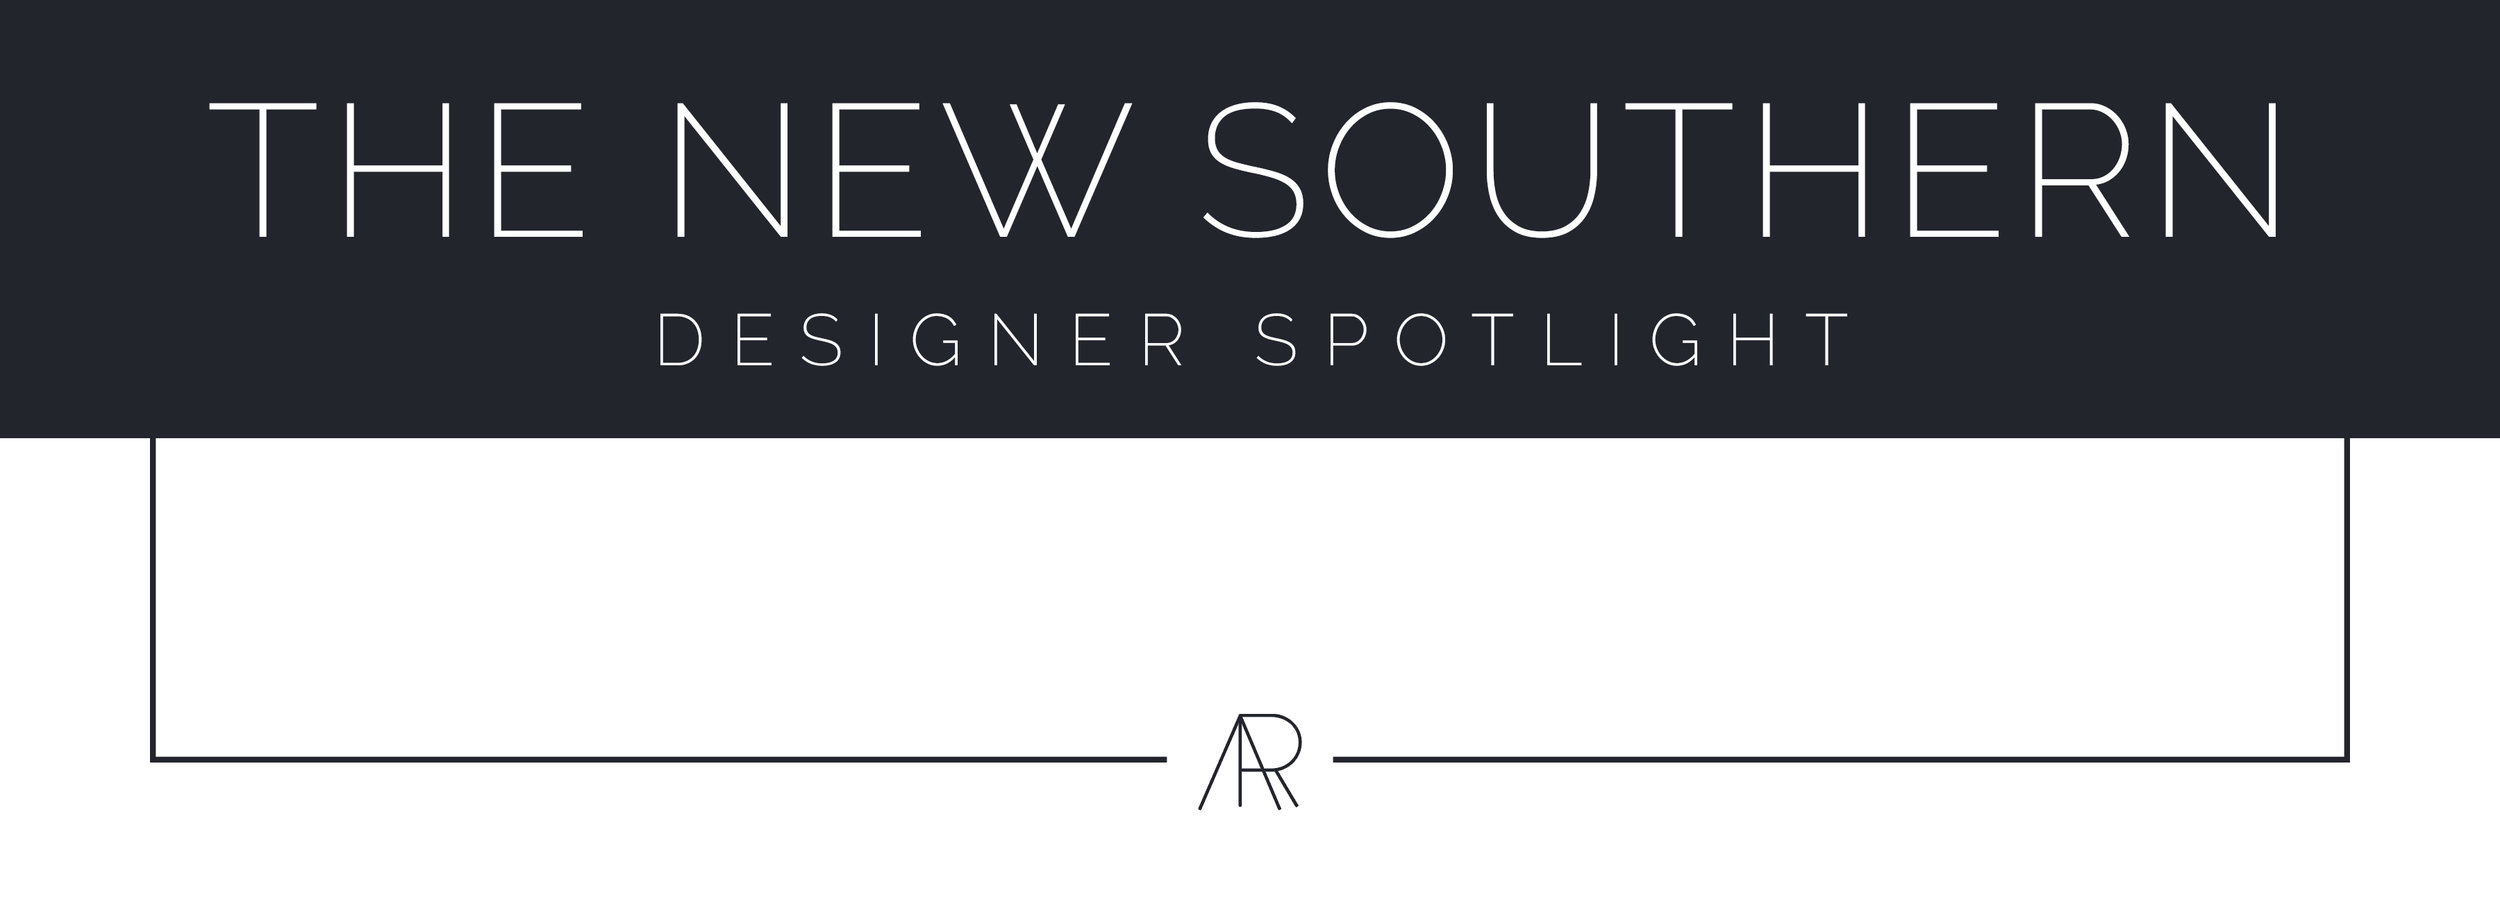 Alyssa Rosenheck's The New Southern Designer Spotlight with Duffy Stone, Interior Design Studio of Austin, TX